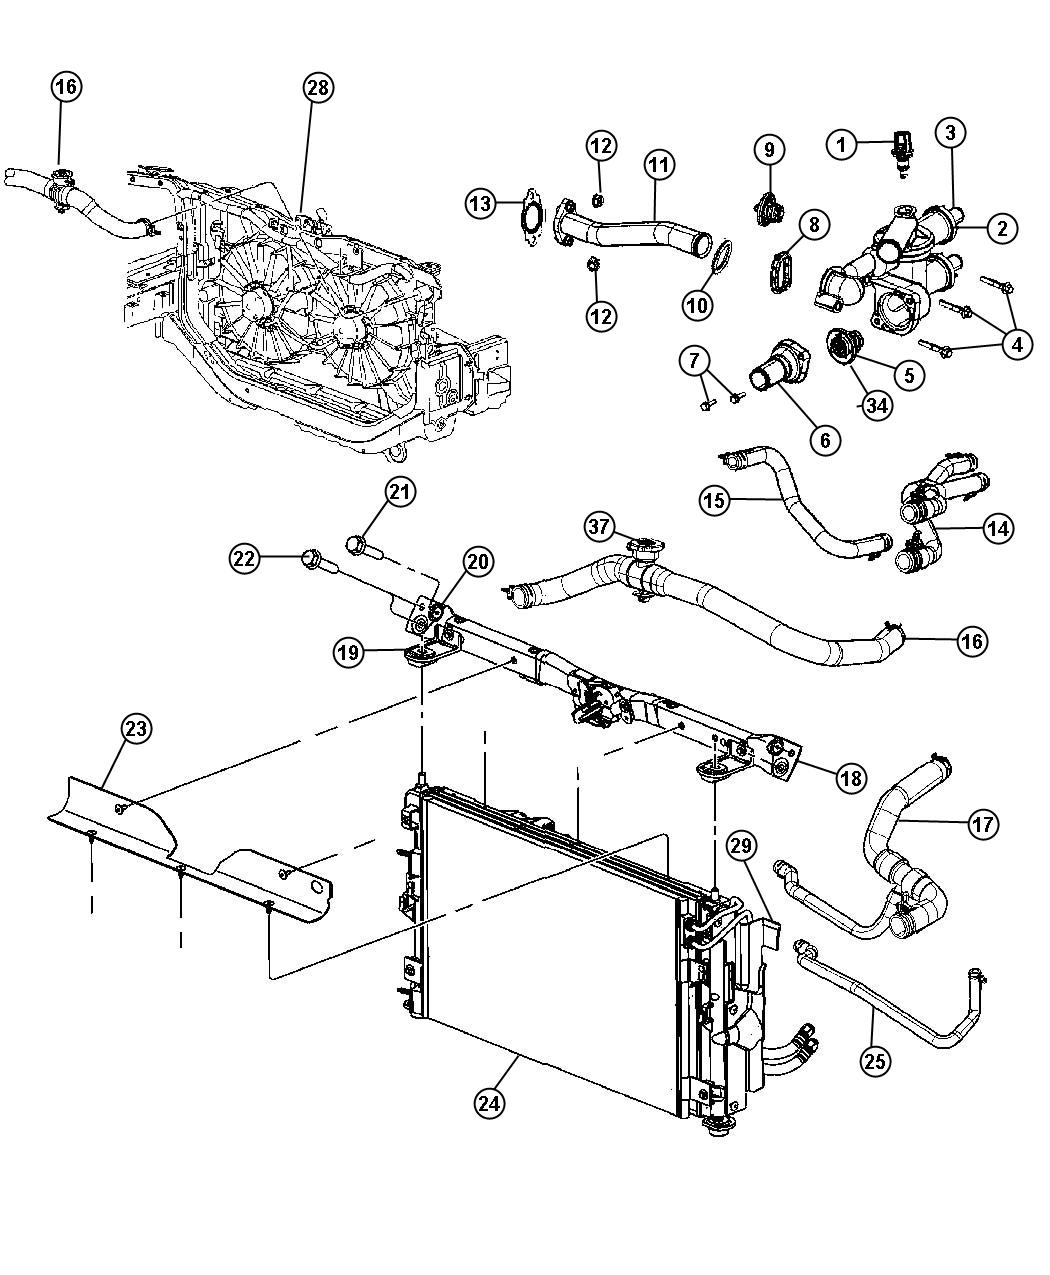 Dodge Charger 5 7 Hemi Engine Diagram Dodge Wiring